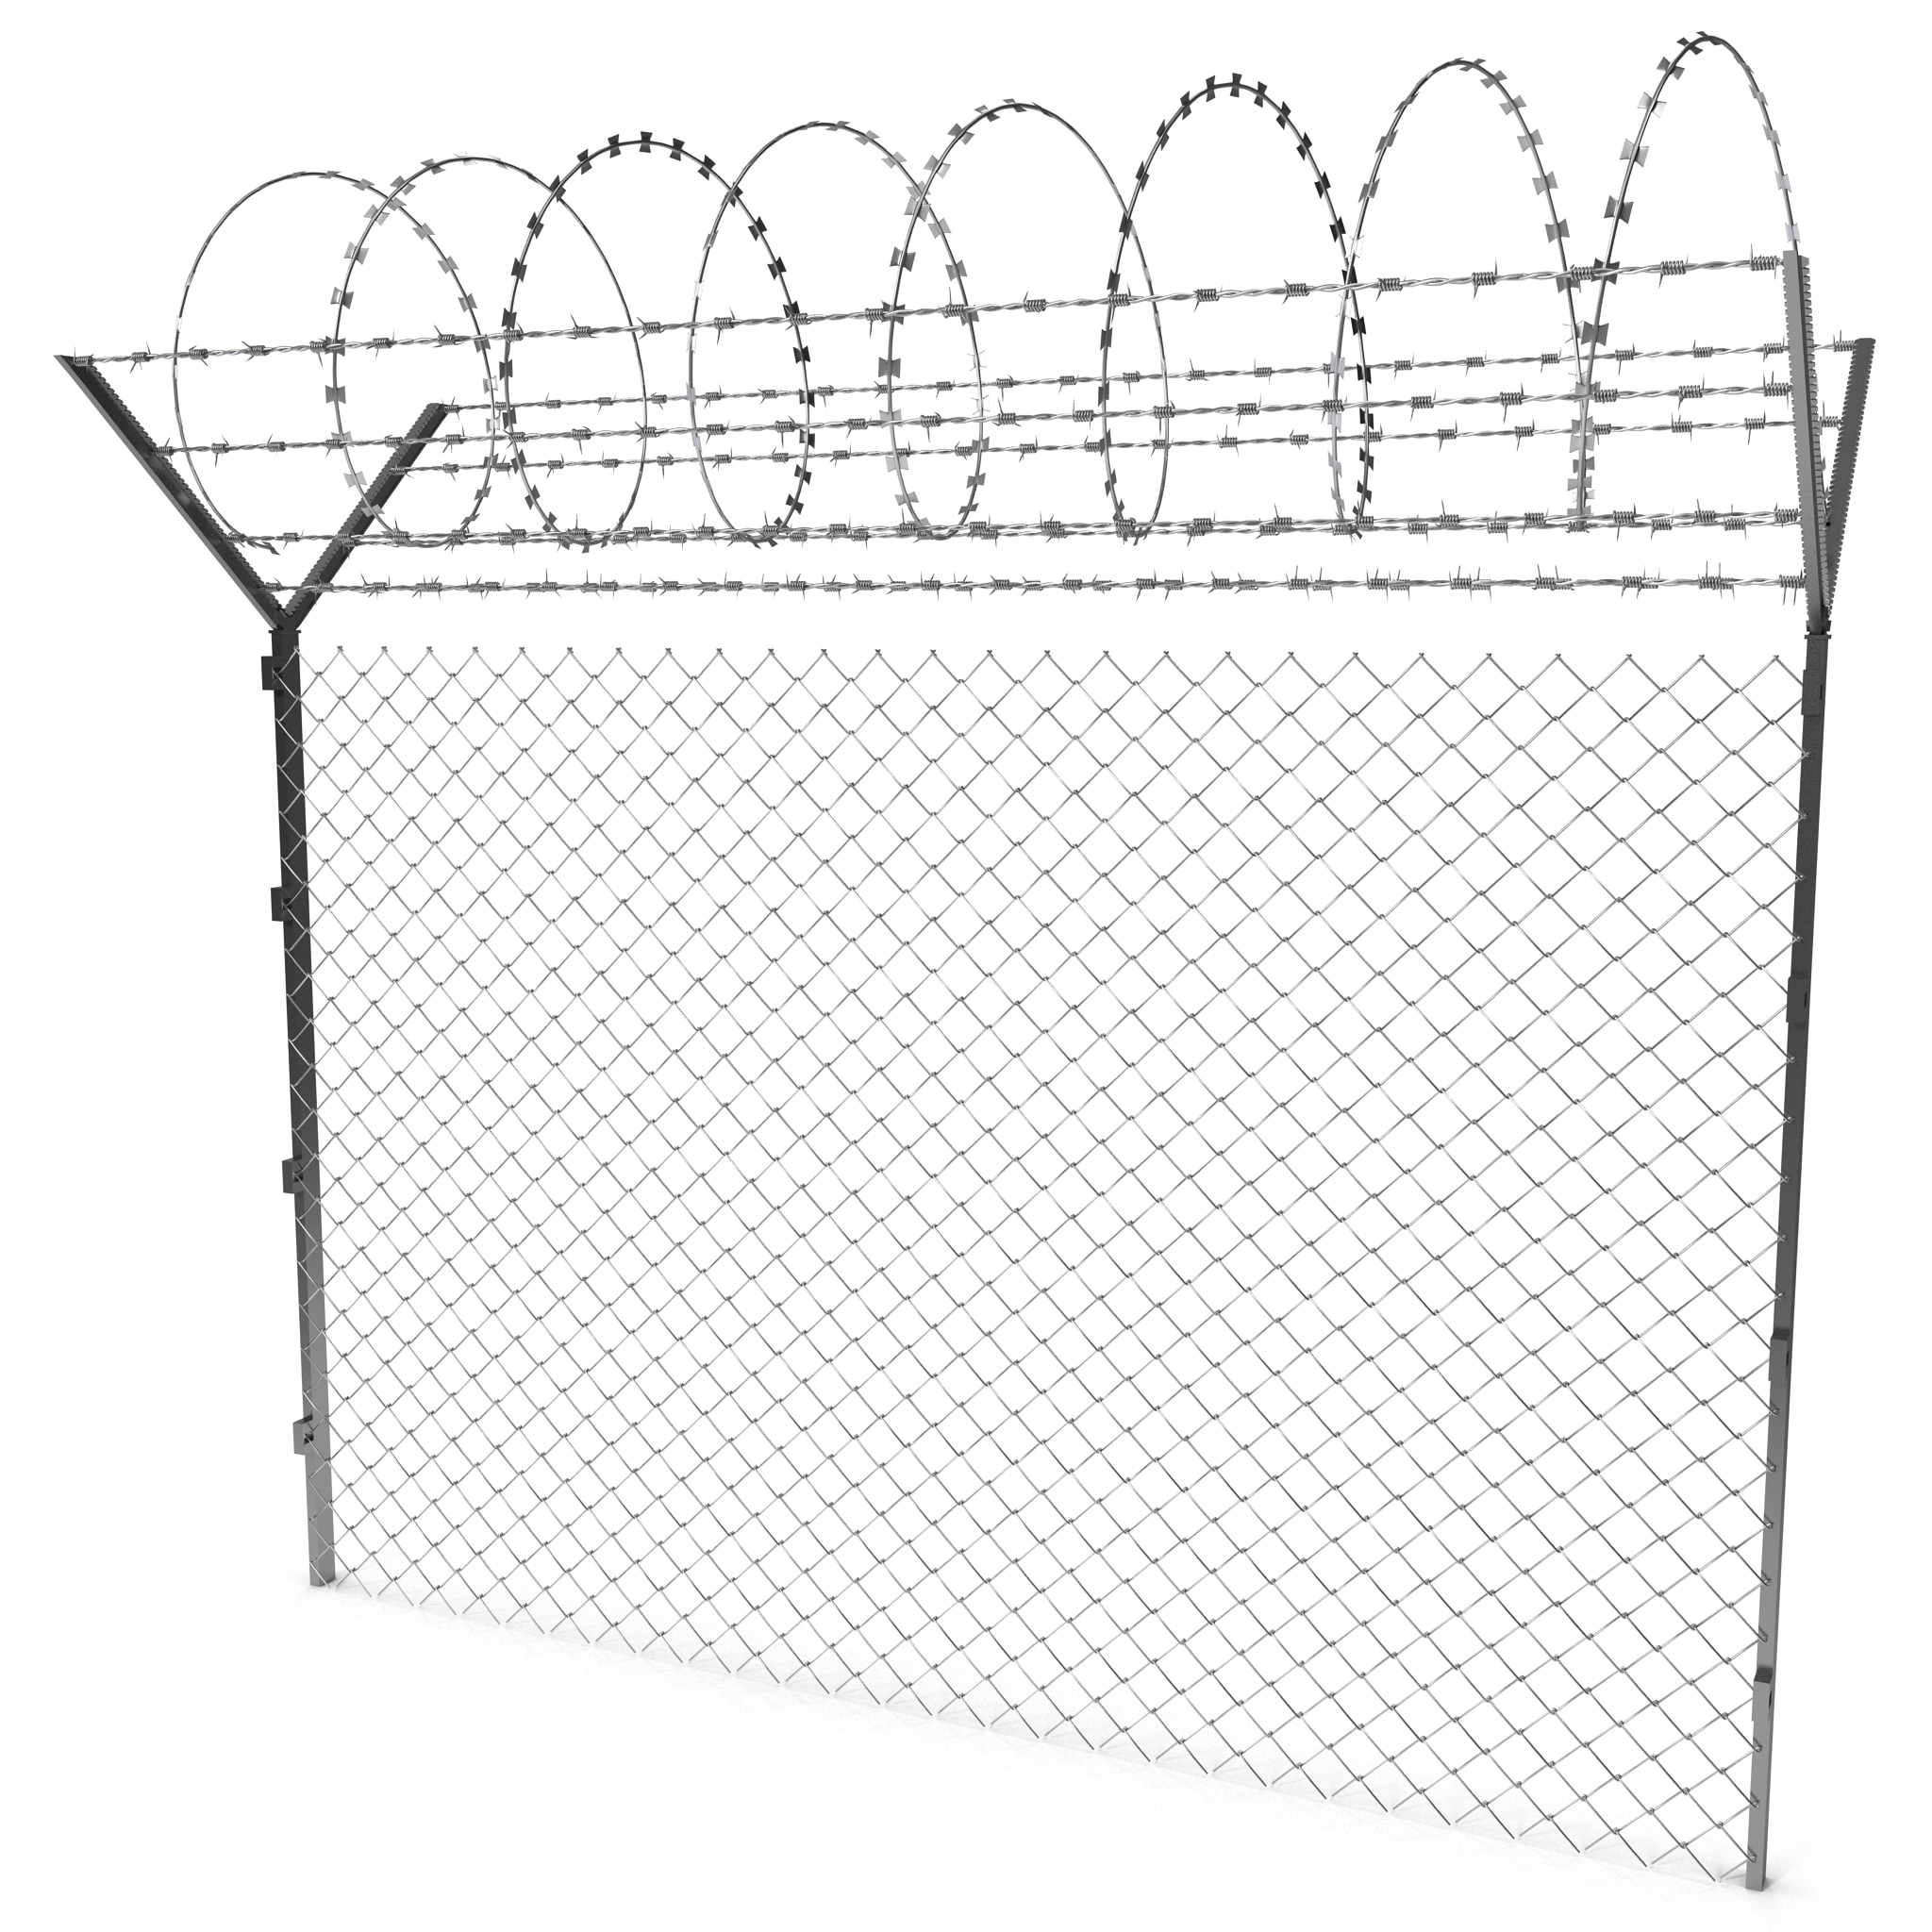 Barbed Wire Fence_94.jpg